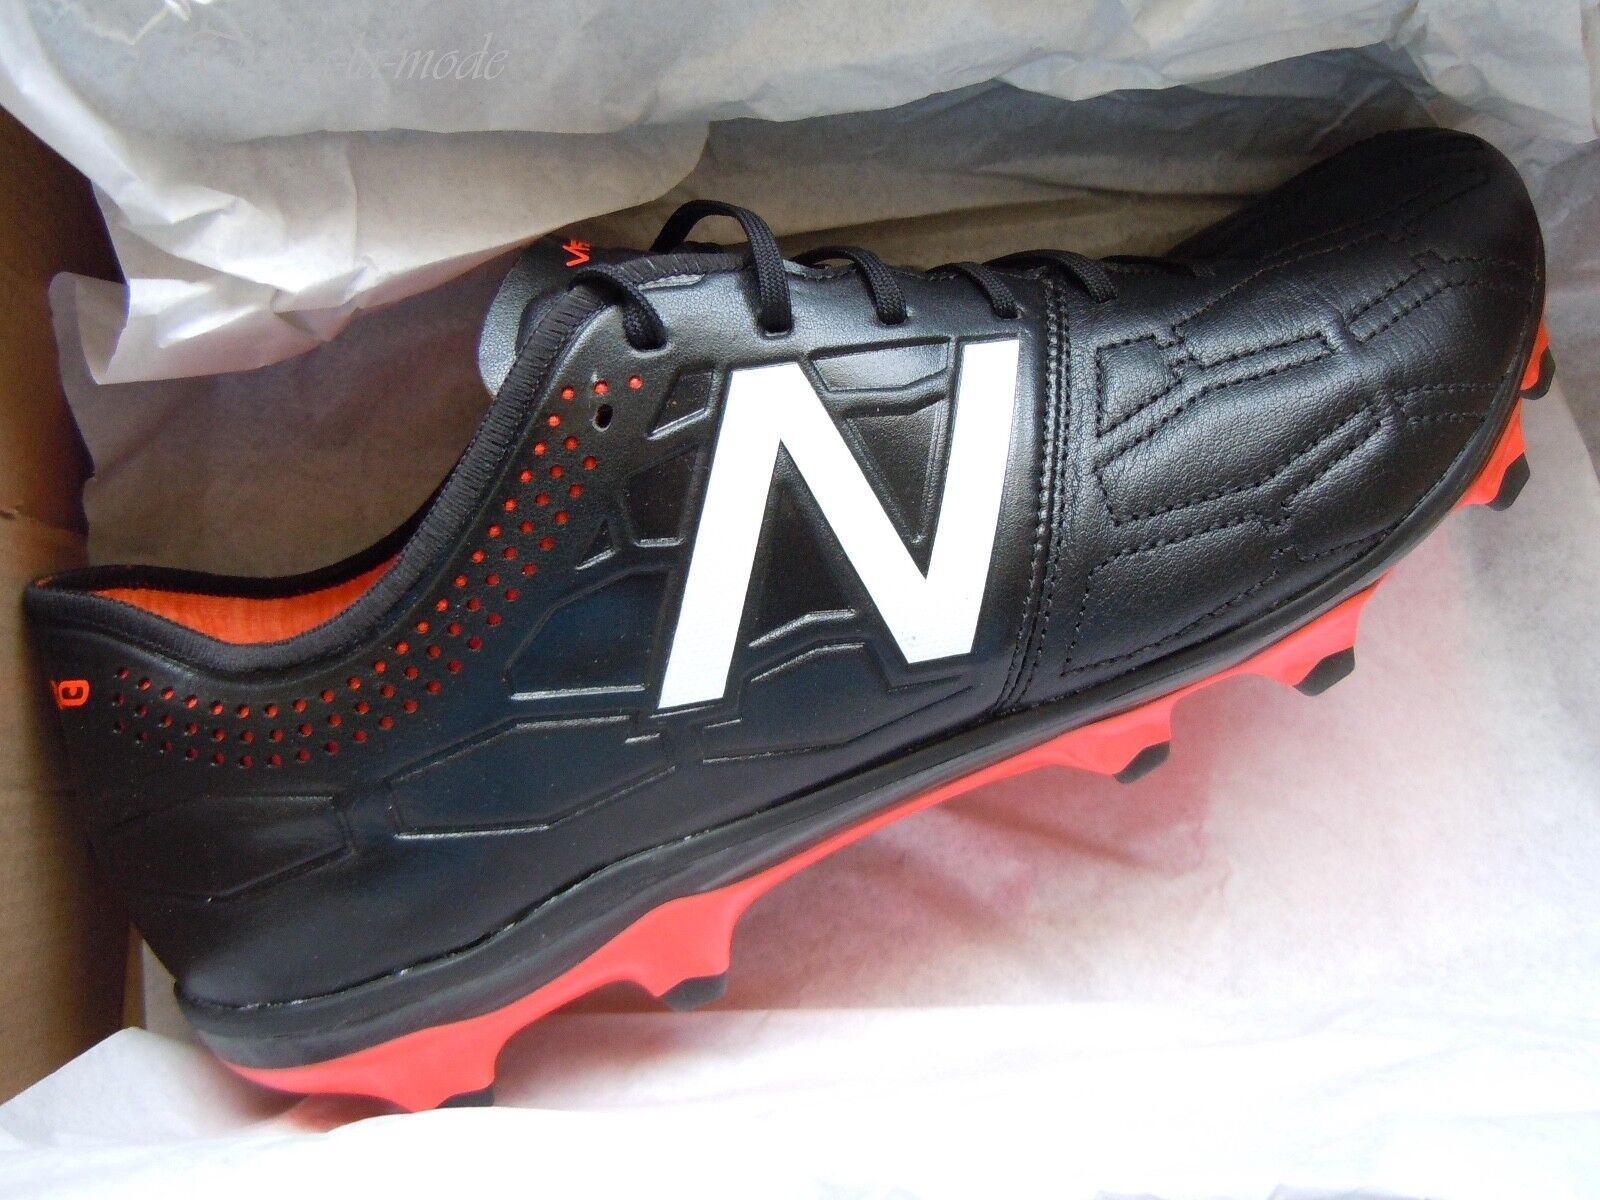 New Balance Visaro Pro 2.0 K-Leather FG (men's) ___ Size 10.5 ___MSVRKFTT cleats